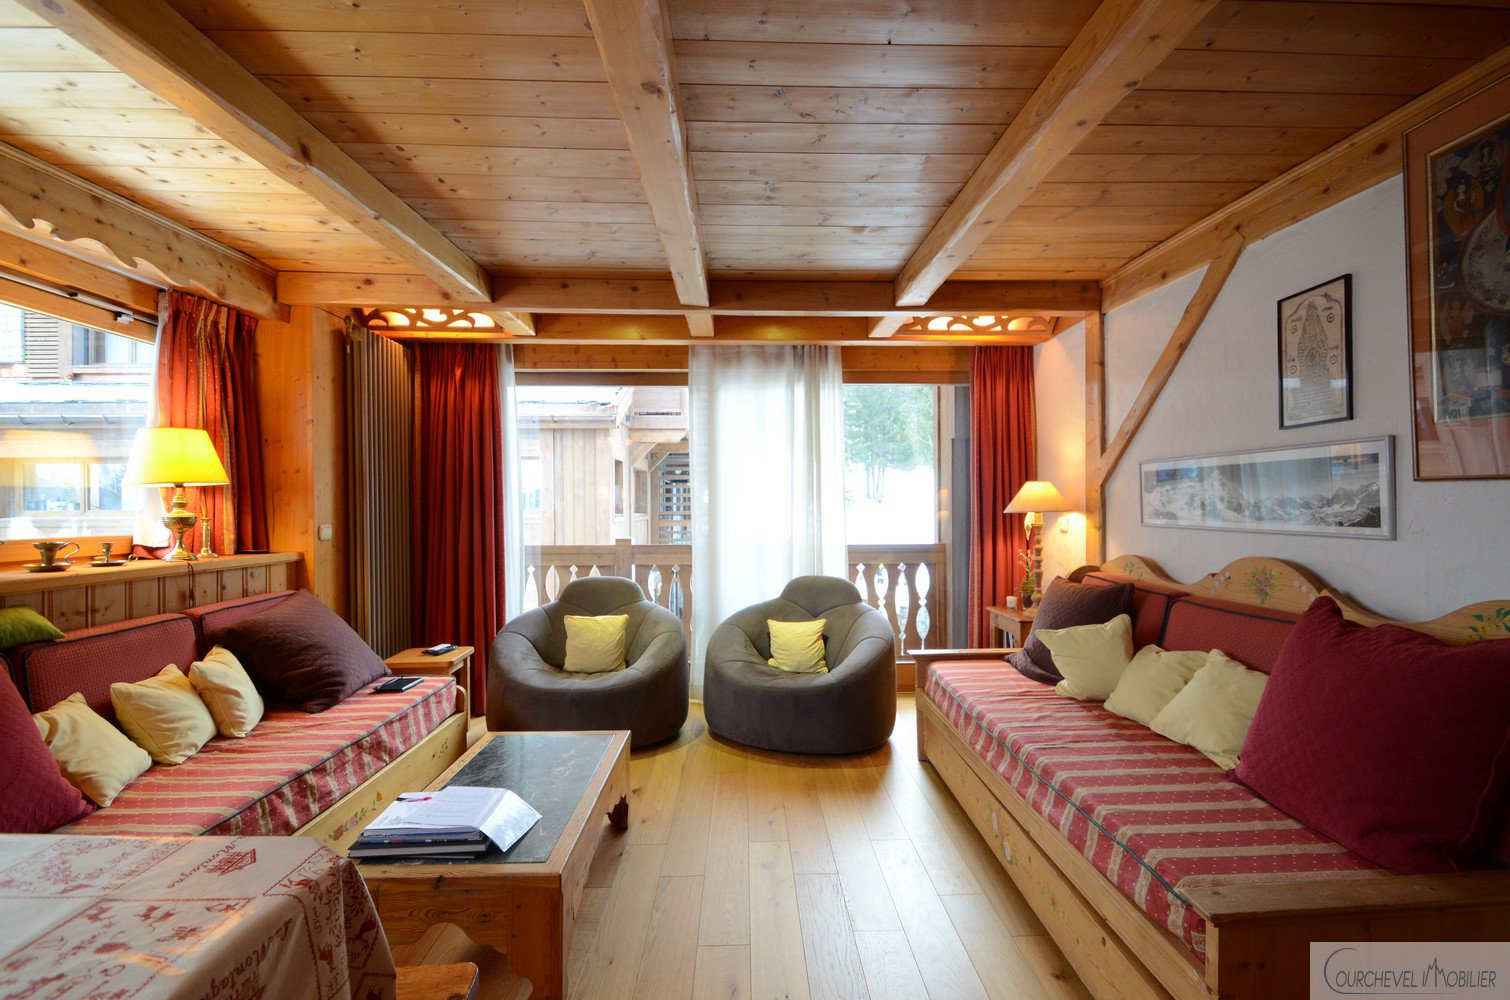 Verkoop Appartement - Courchevel 1850